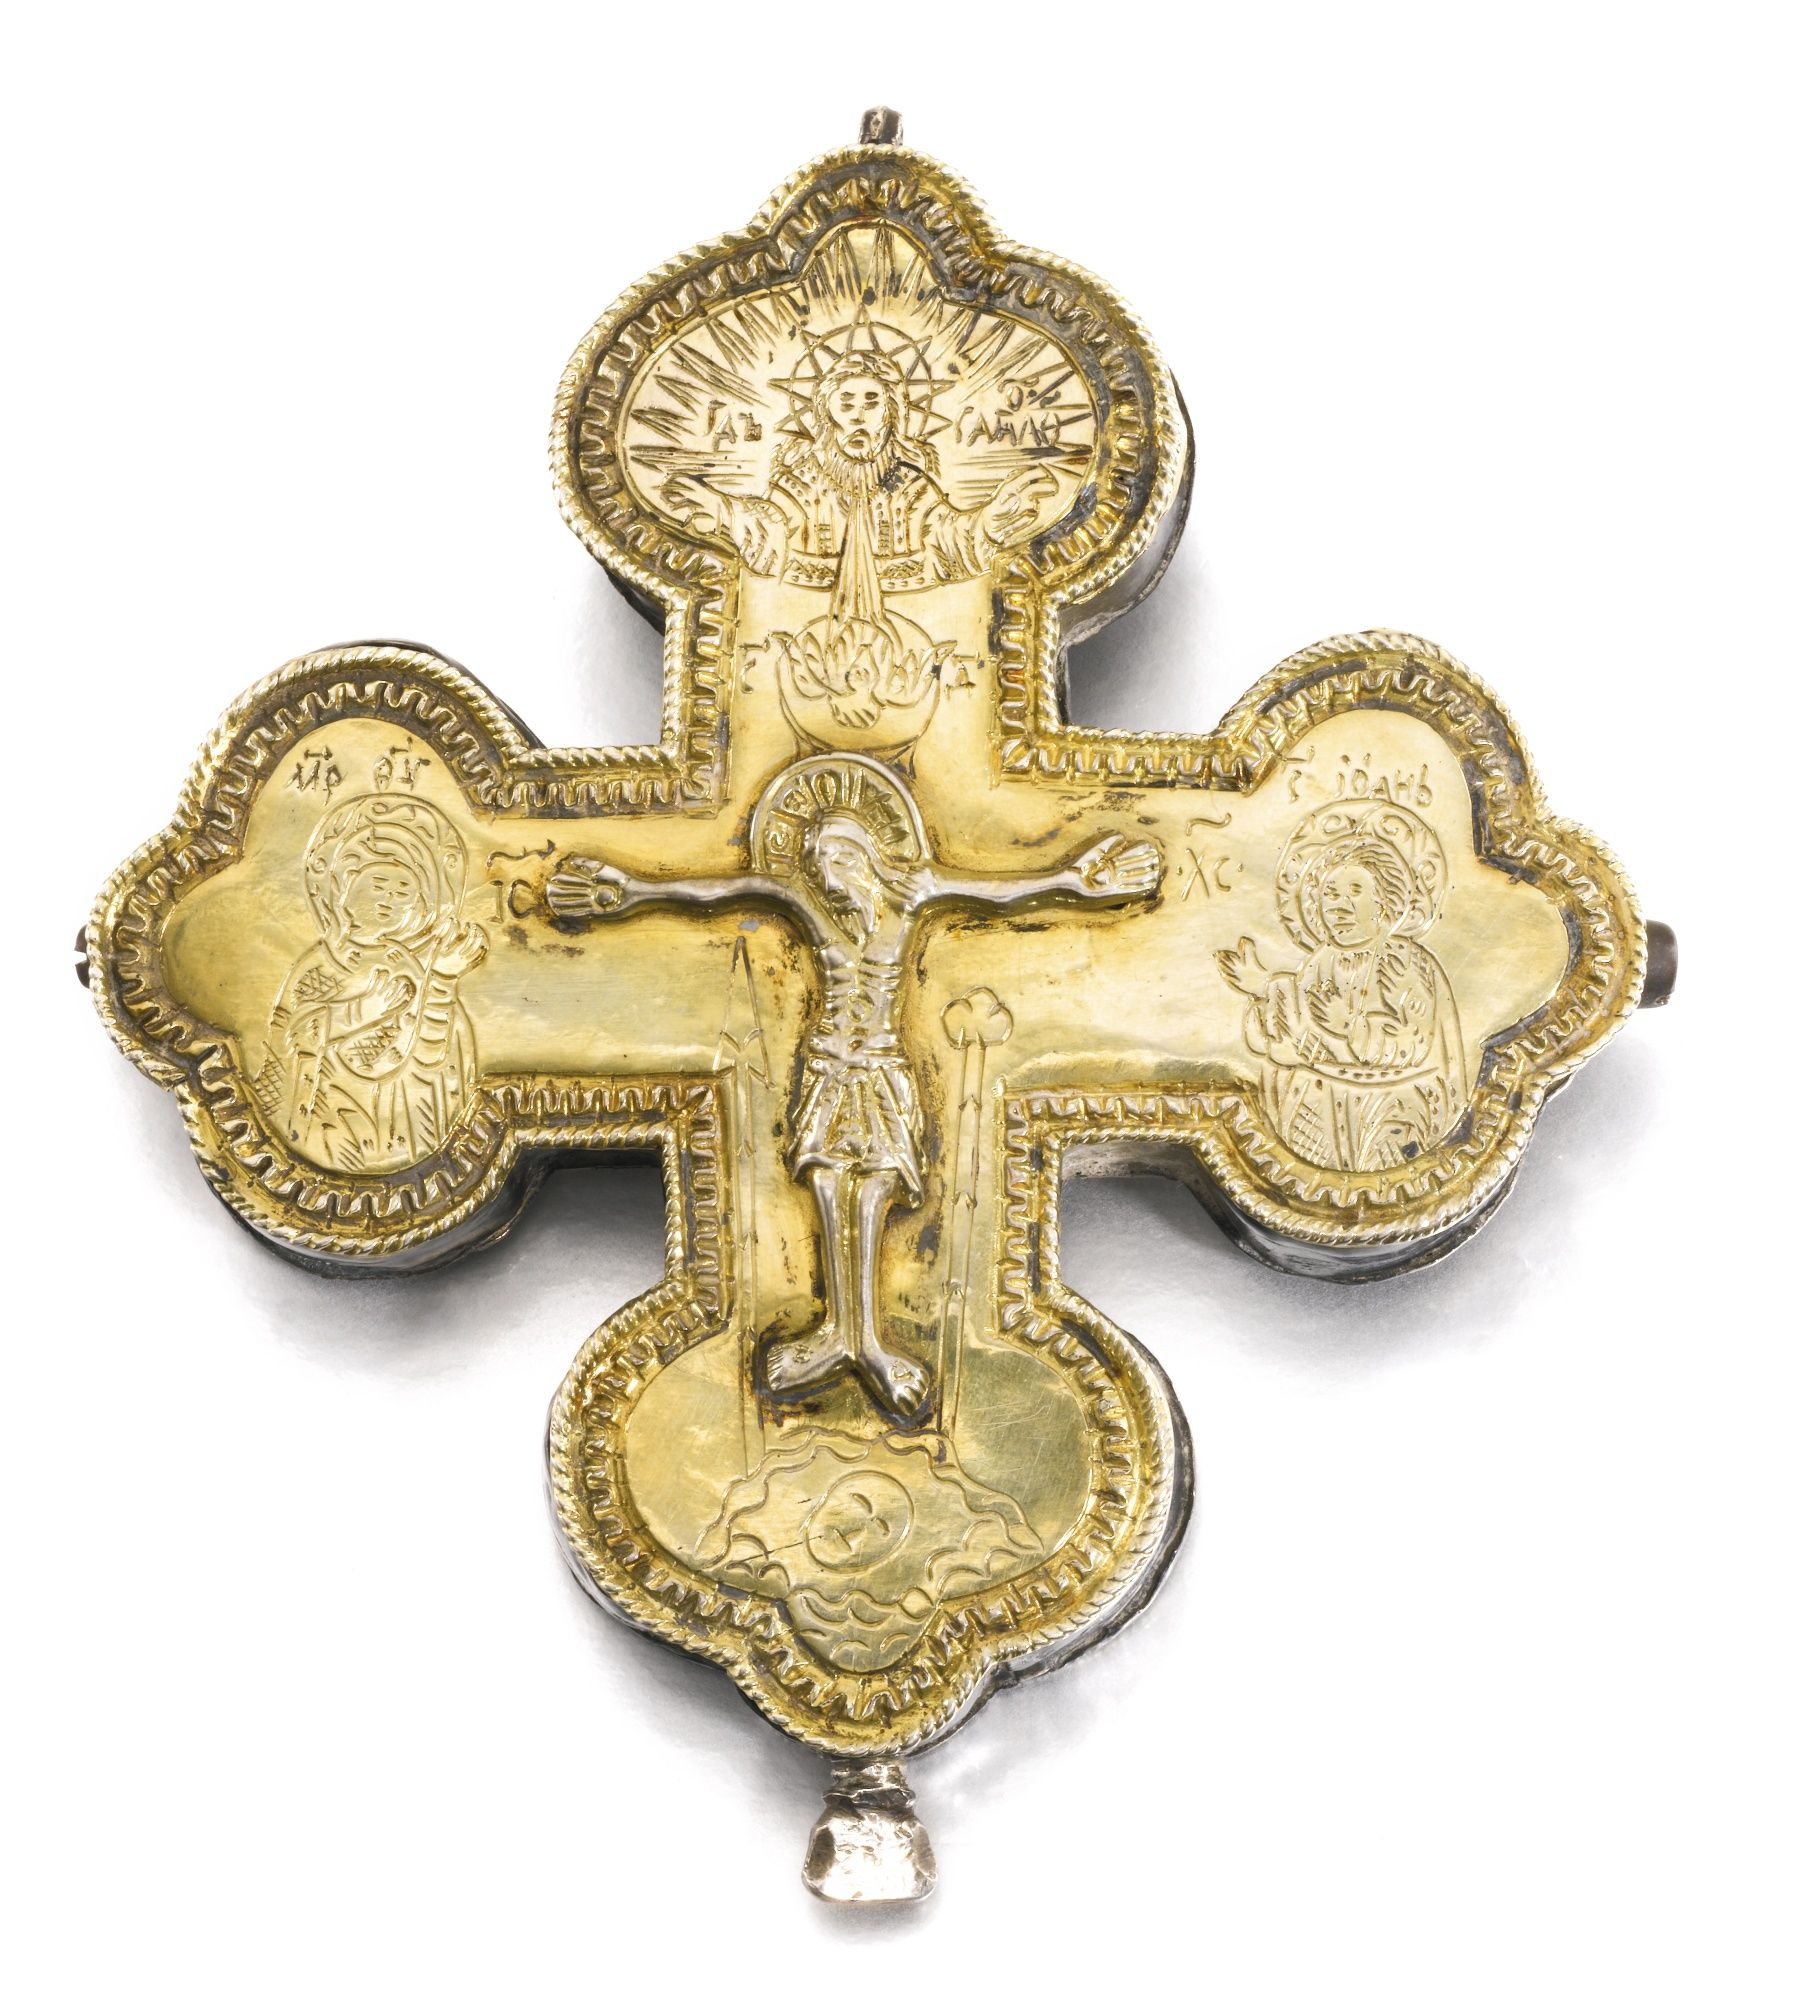 A parcel-gilt silver reliquary cross, 18th century | lot | Sotheby's